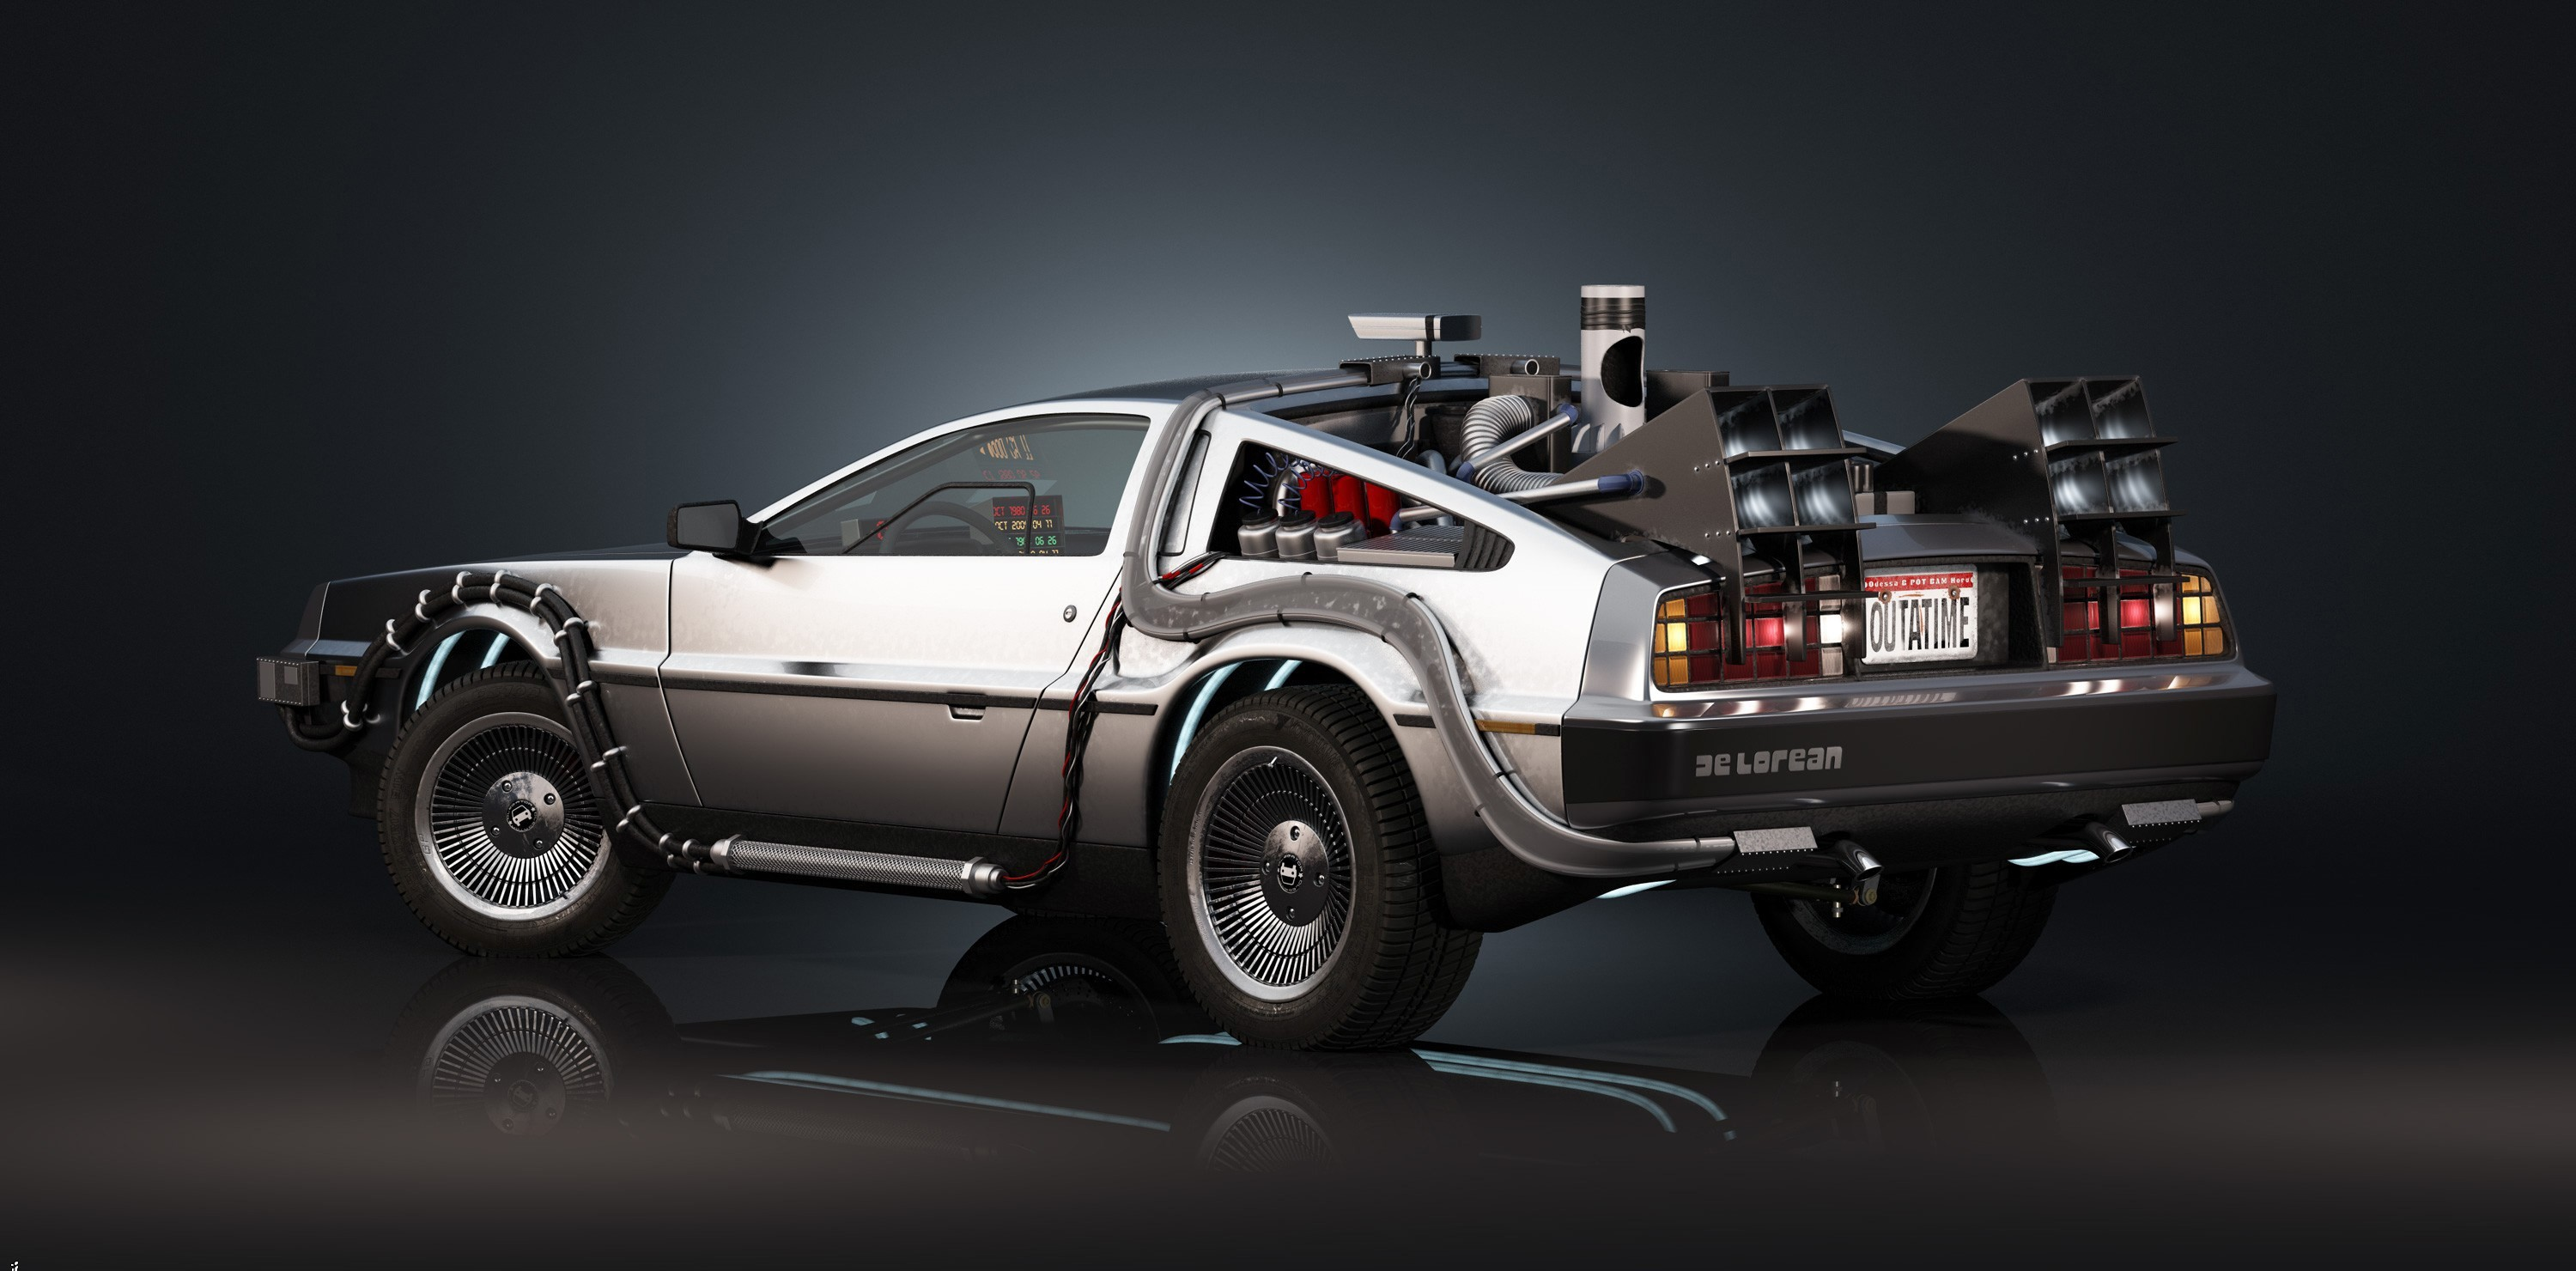 3000x1480  free wallpaper and screensavers for back to the future